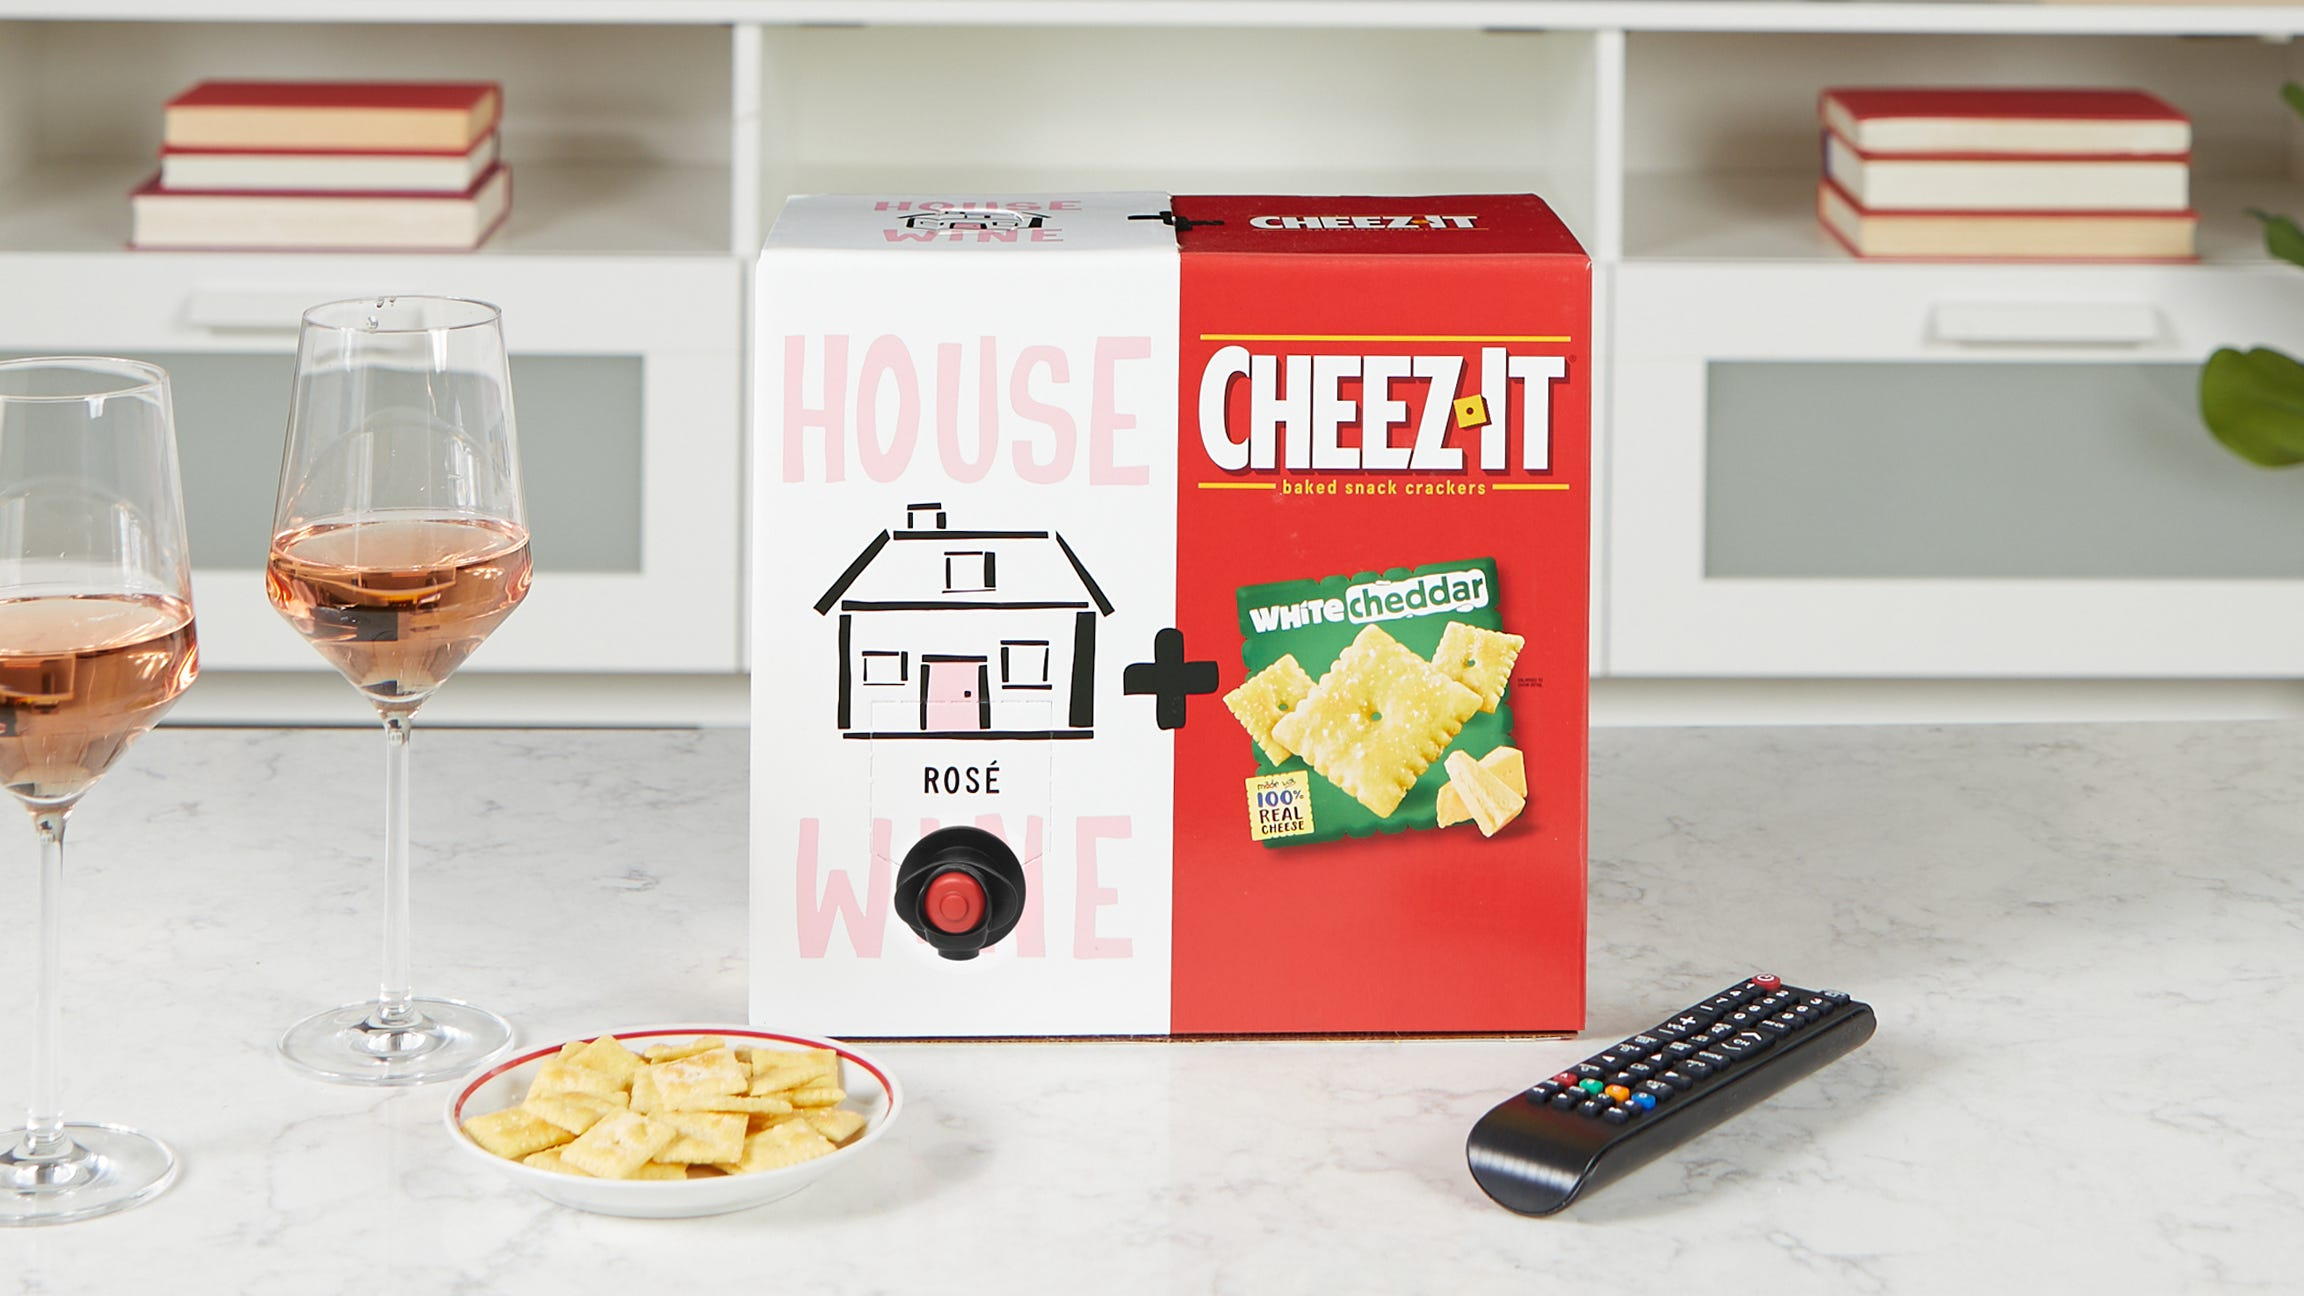 Rosé wine paired with Cheez-It White Cheddar crackers? Yes, in a box.